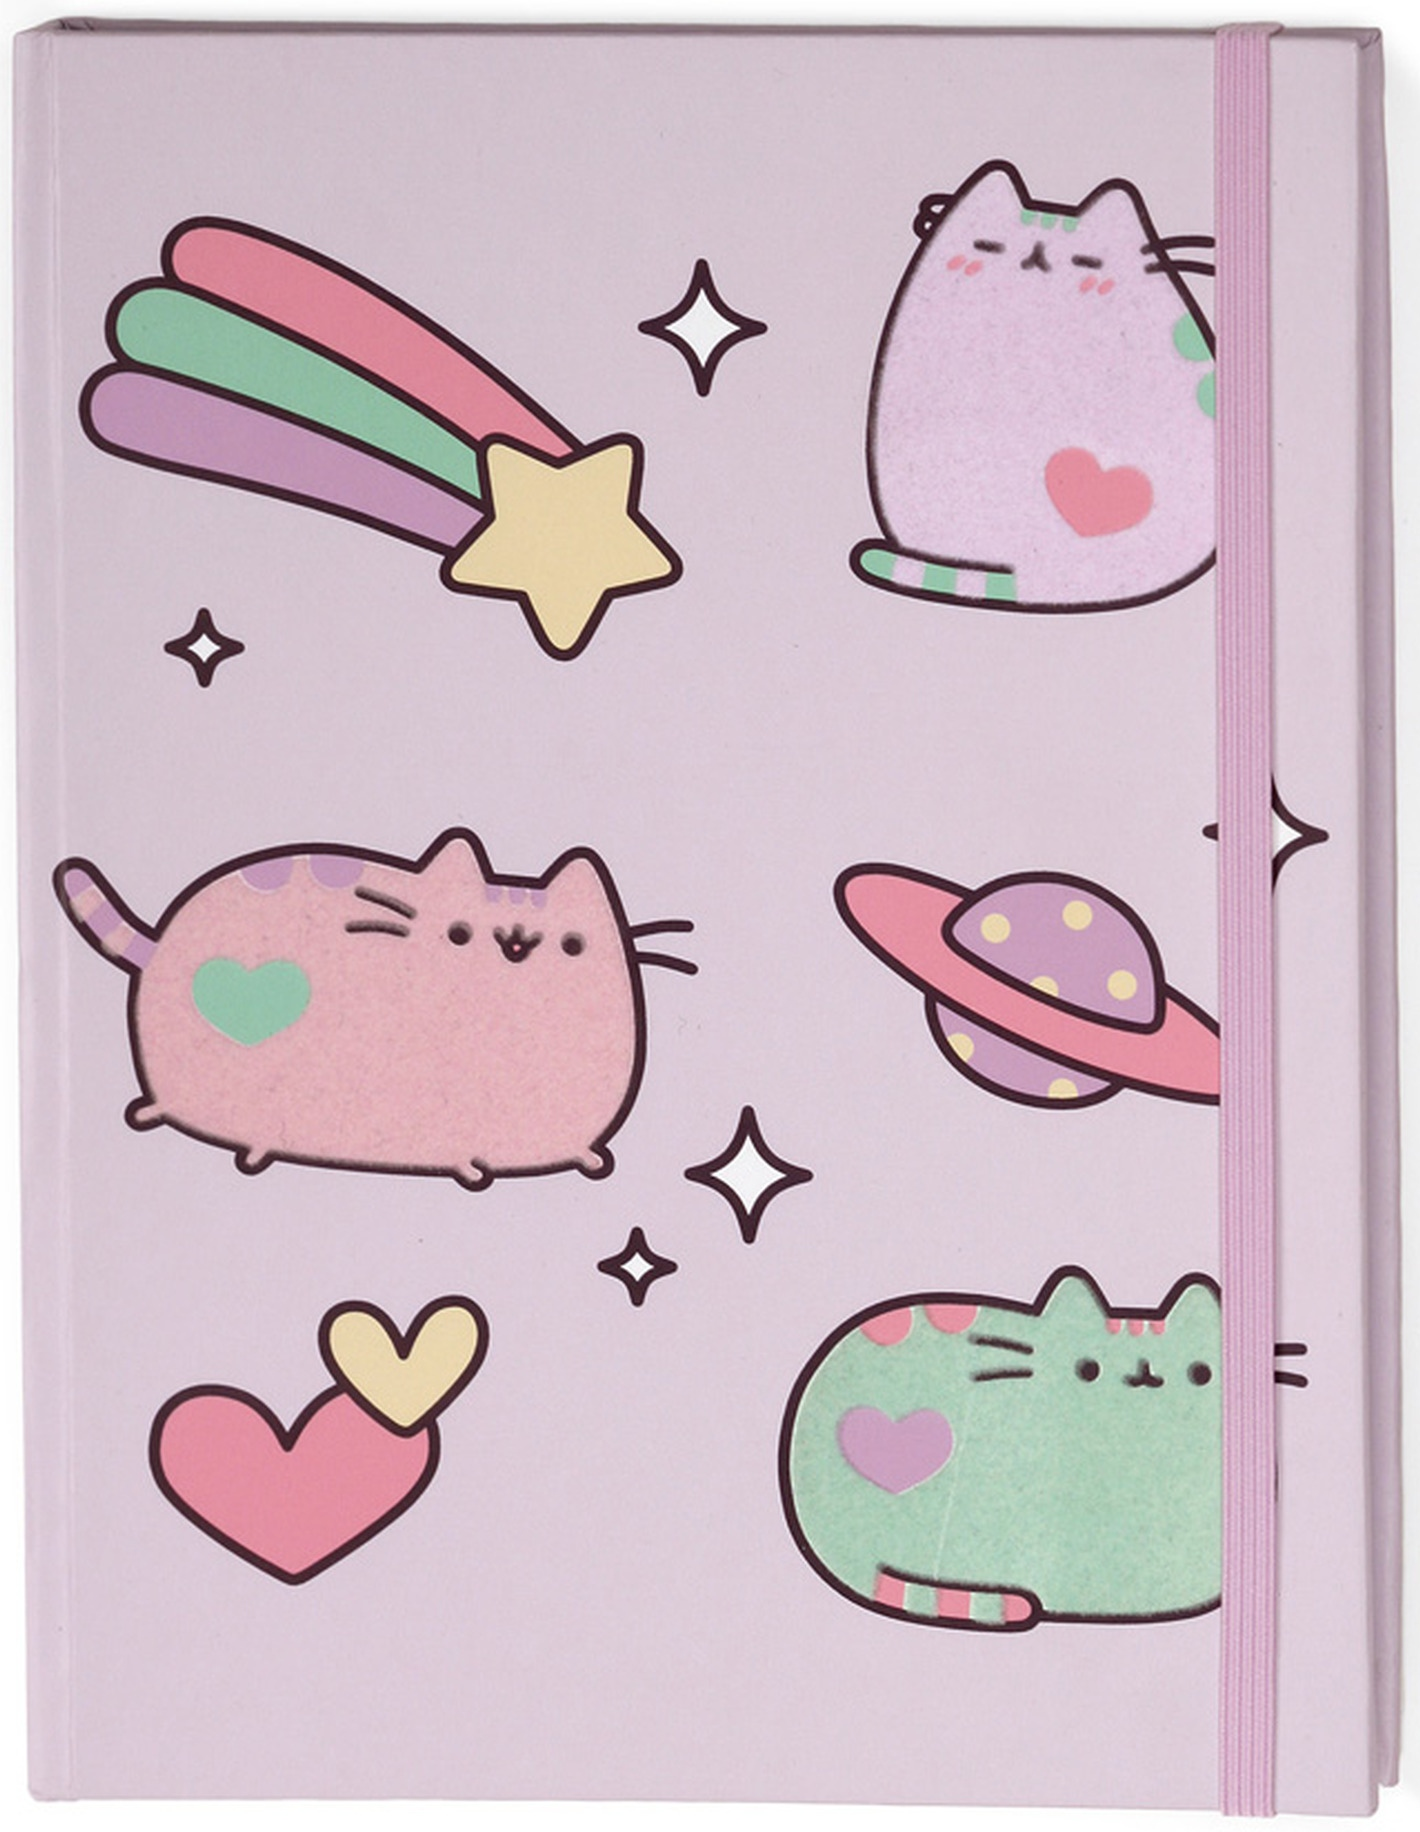 Pusheen by Our Name Is Mud 4060155 Pusheen Journal Pastel